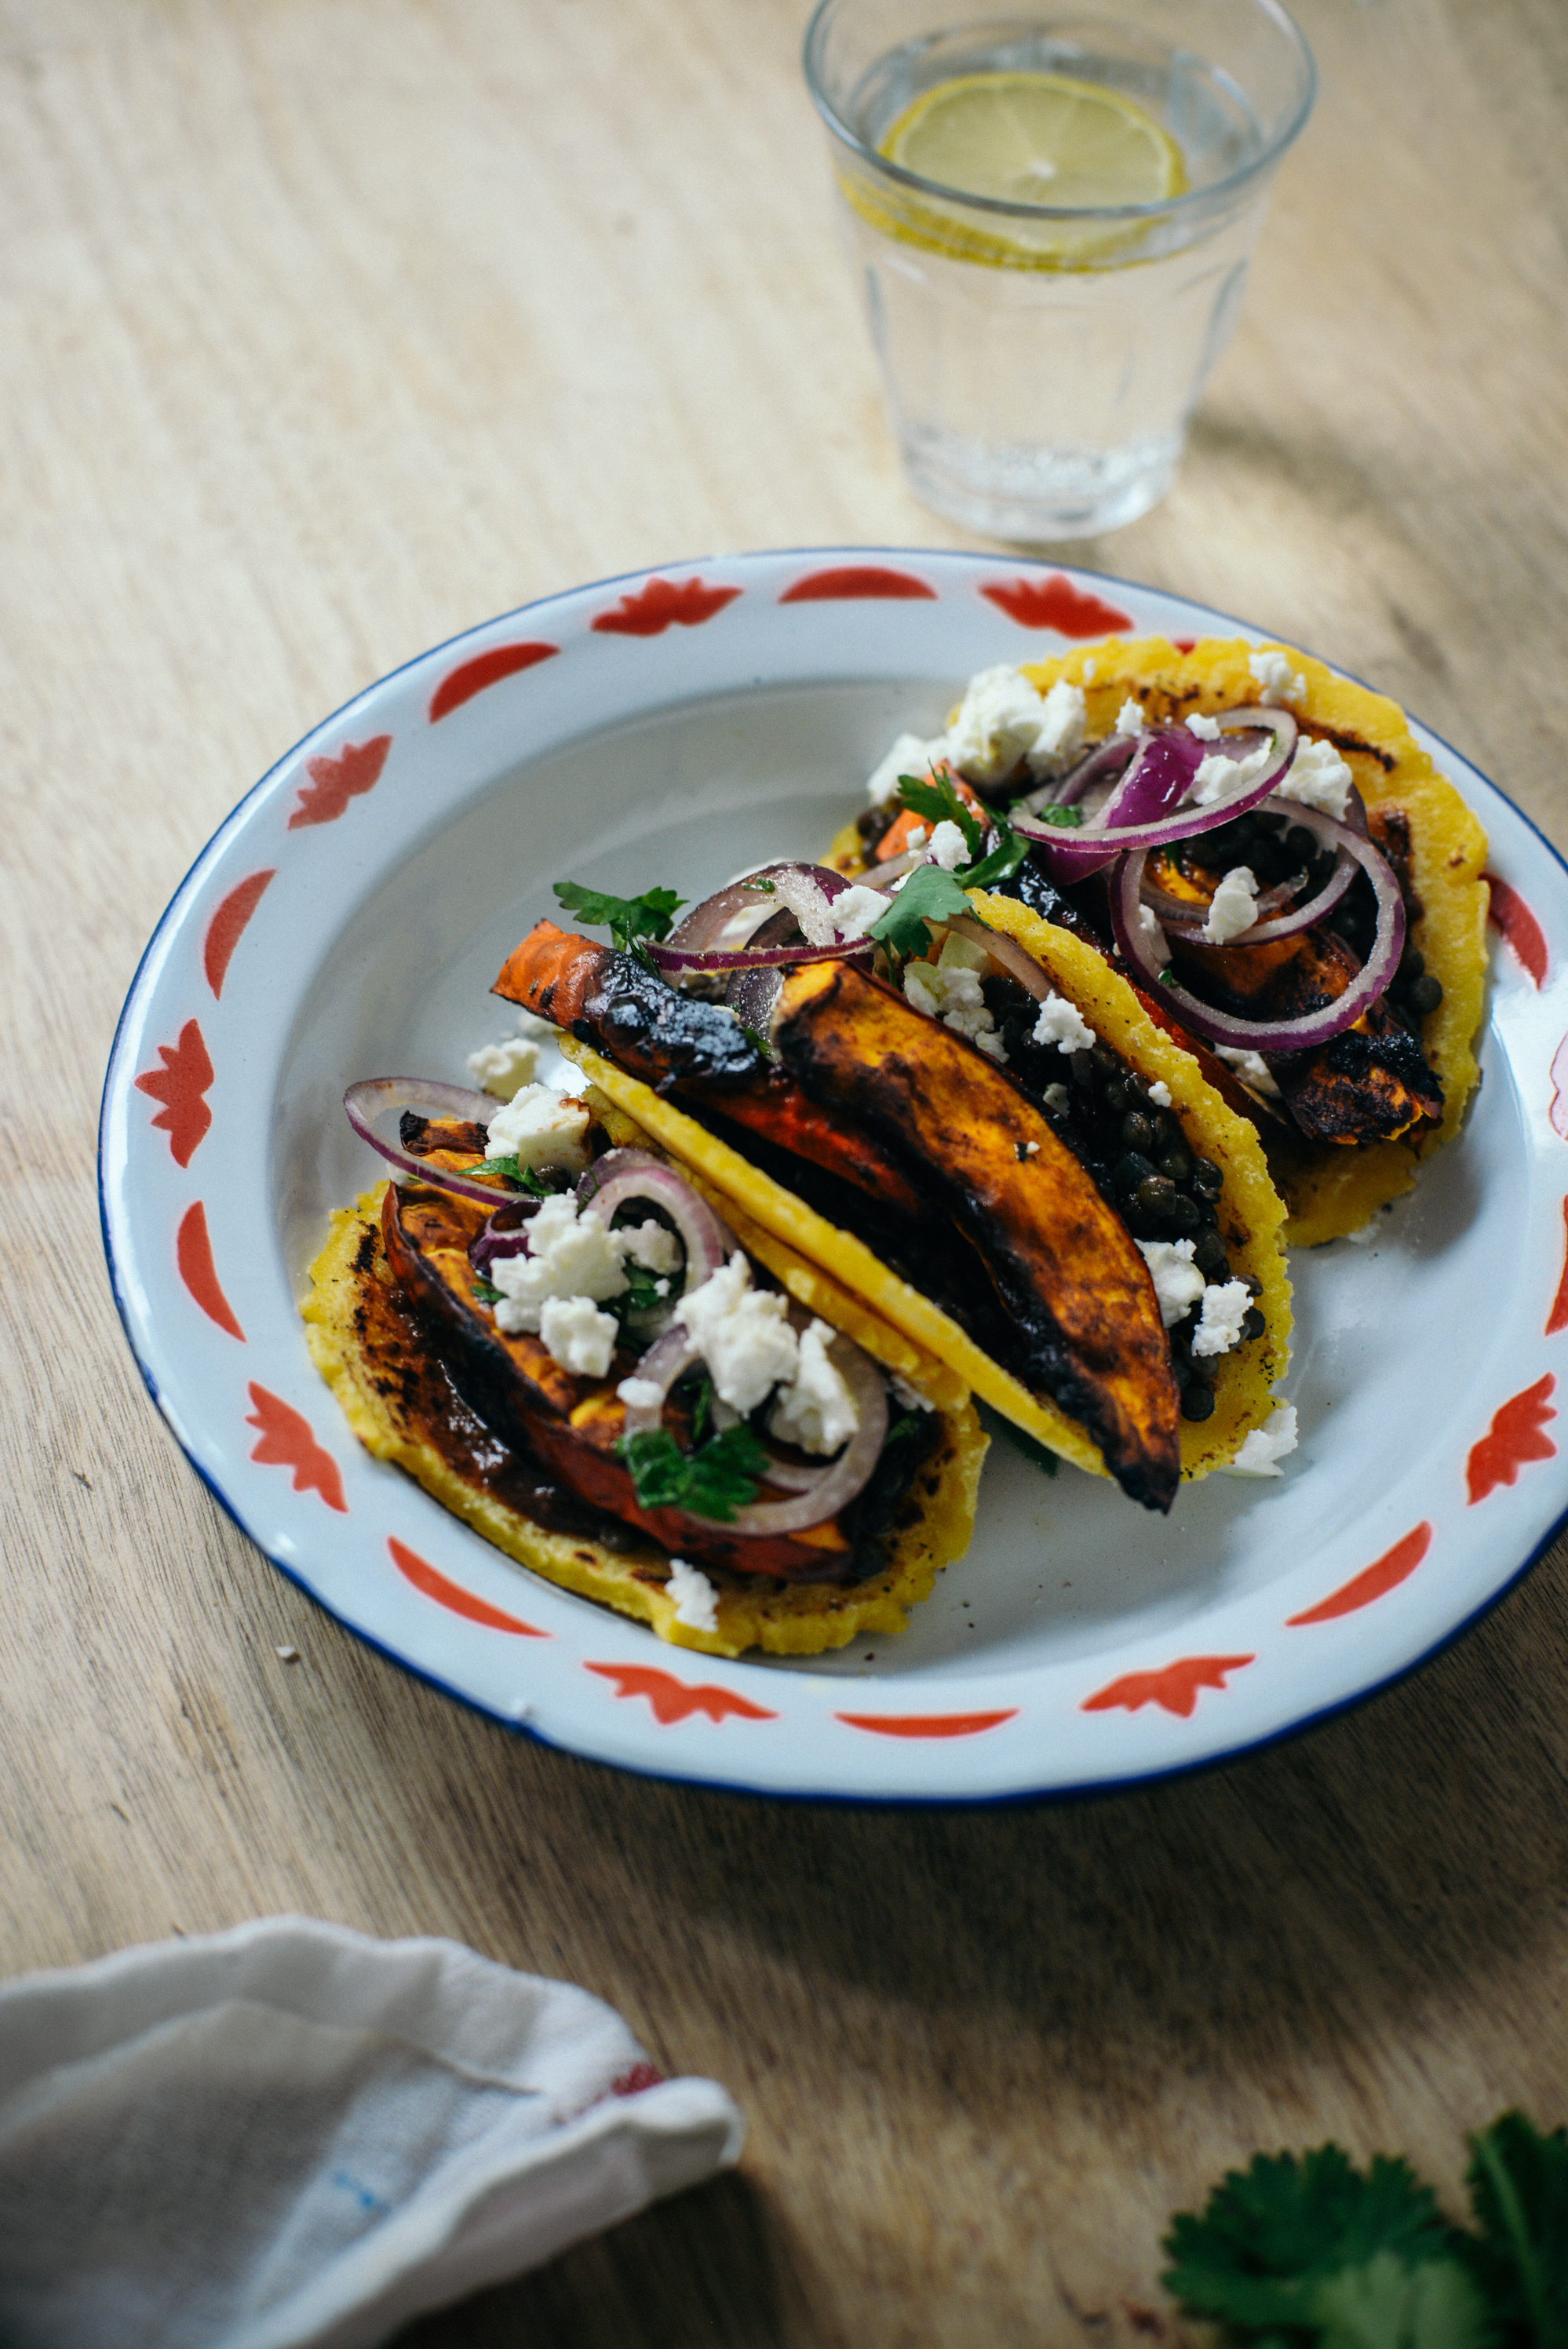 Roasted Squash Lentil Tortillas with Chocolate Sauce